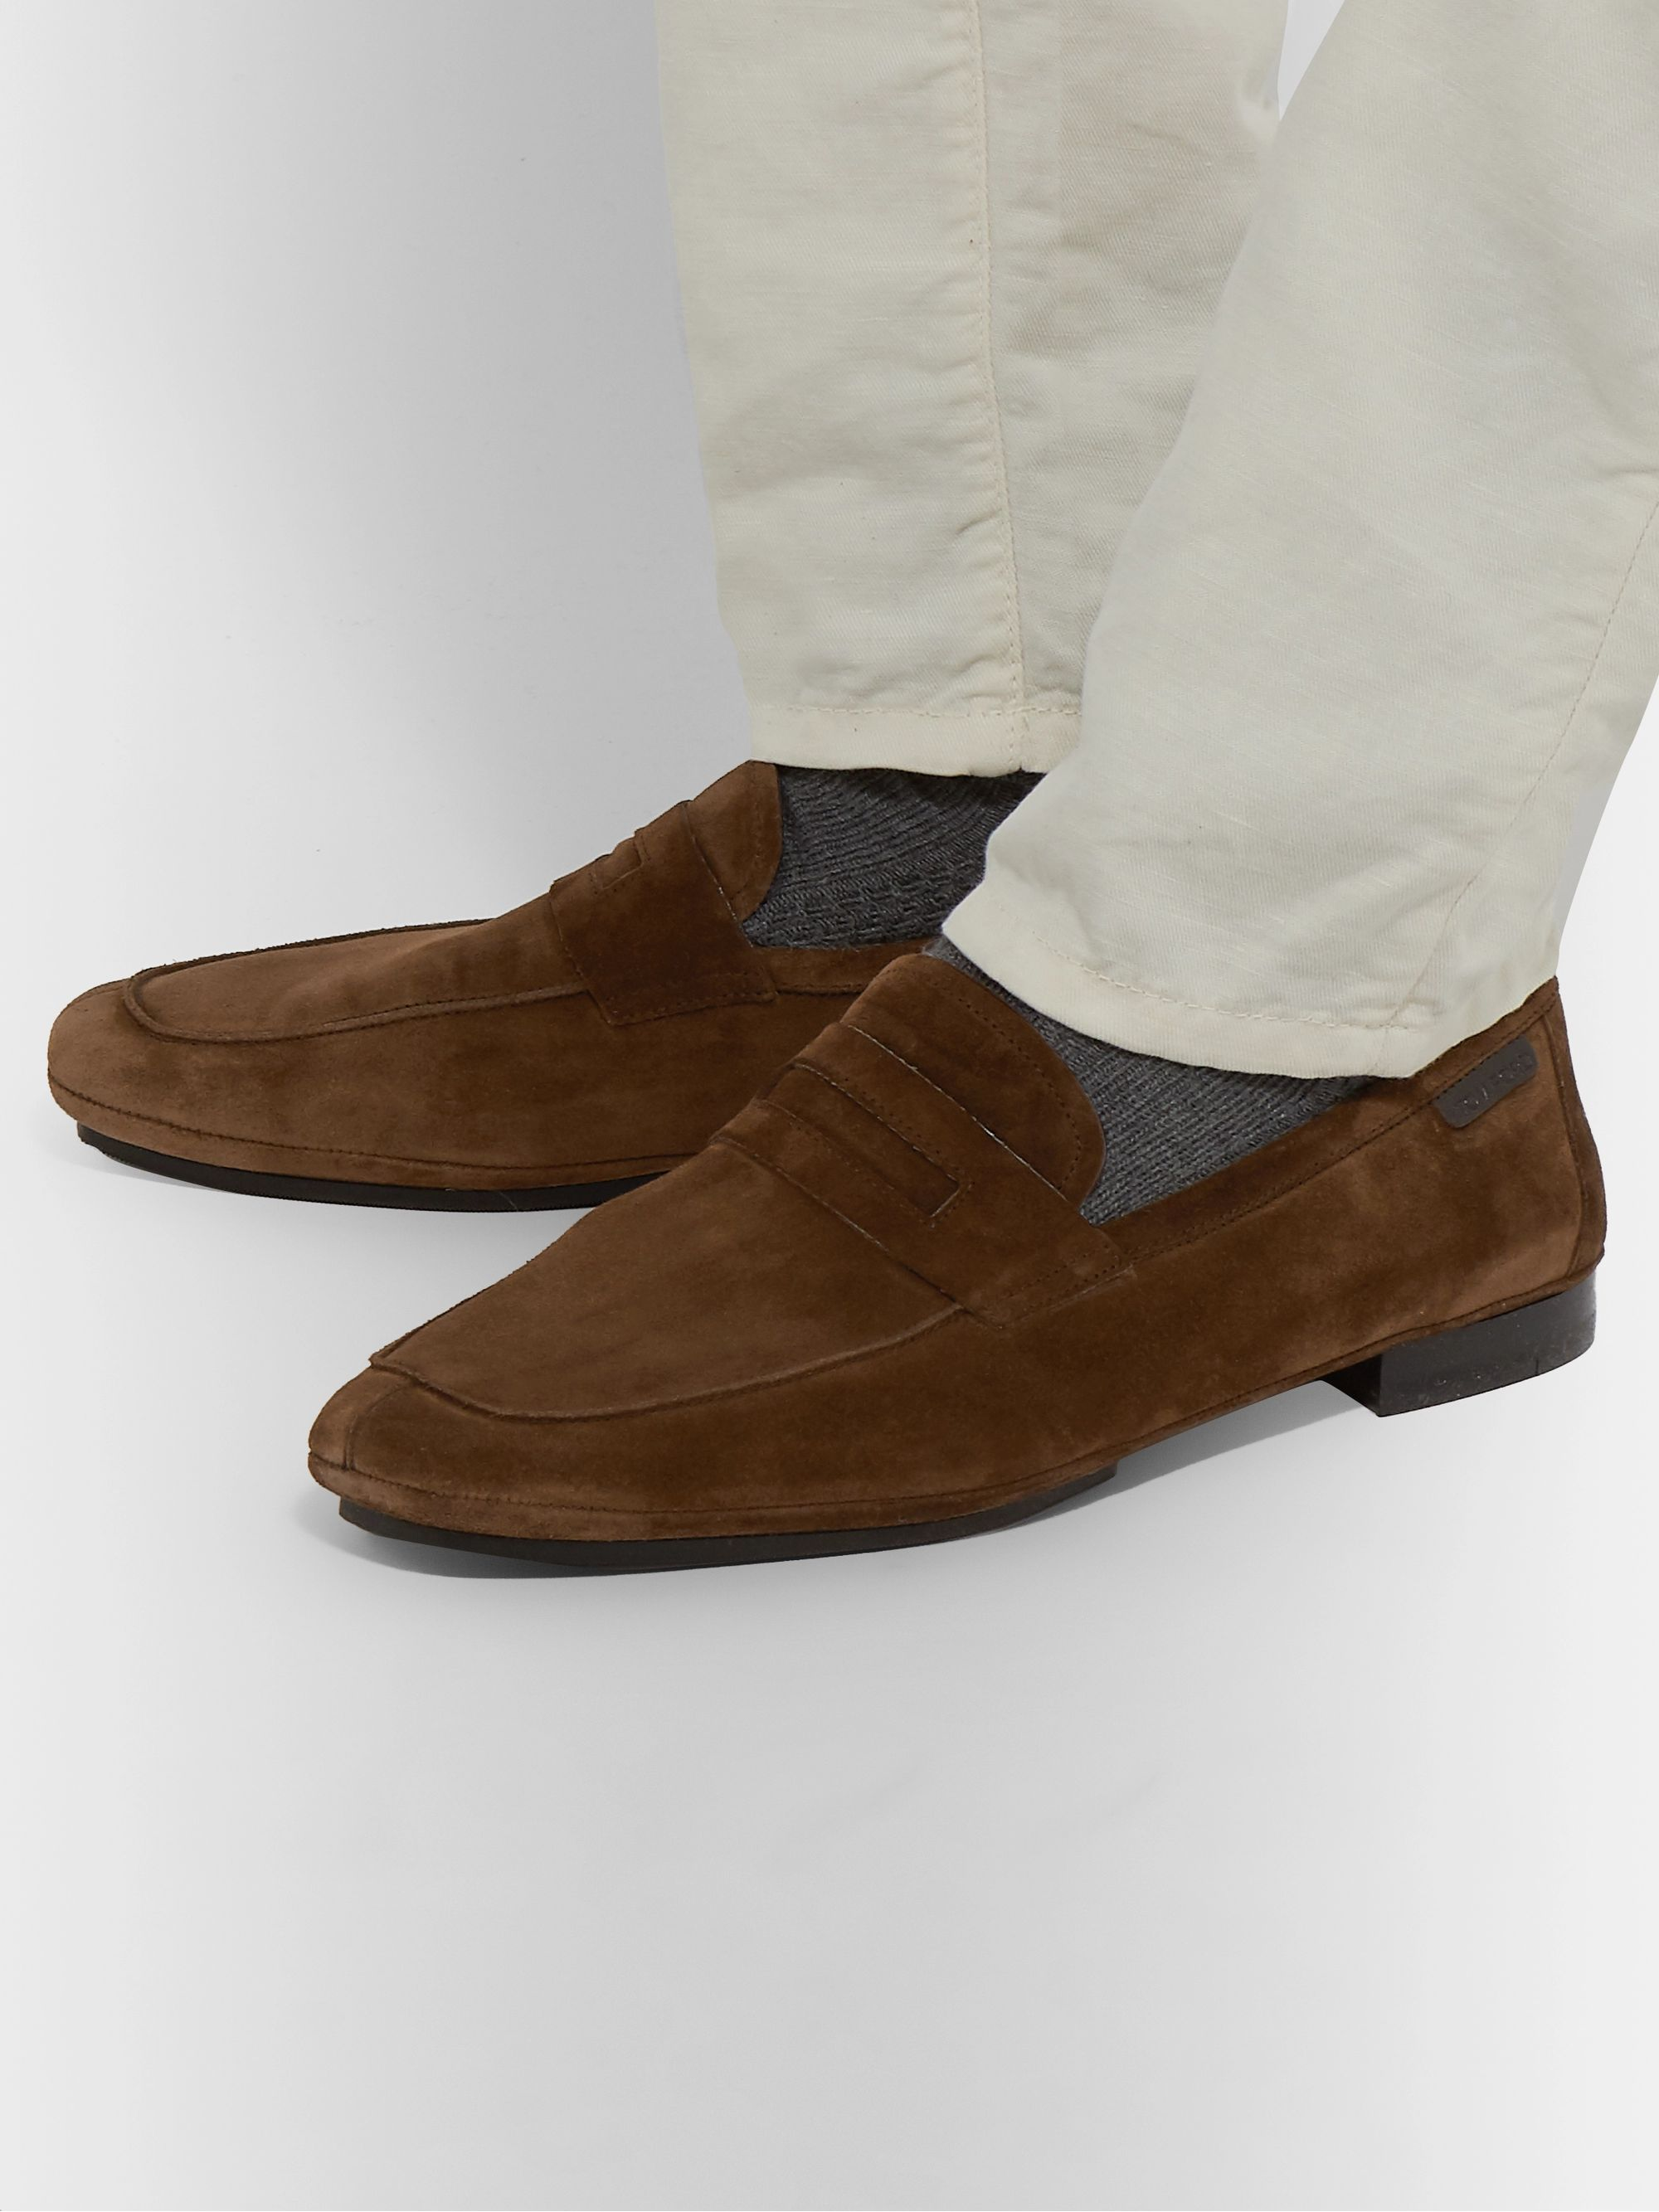 TOM FORD Berrick Suede Penny Loafers